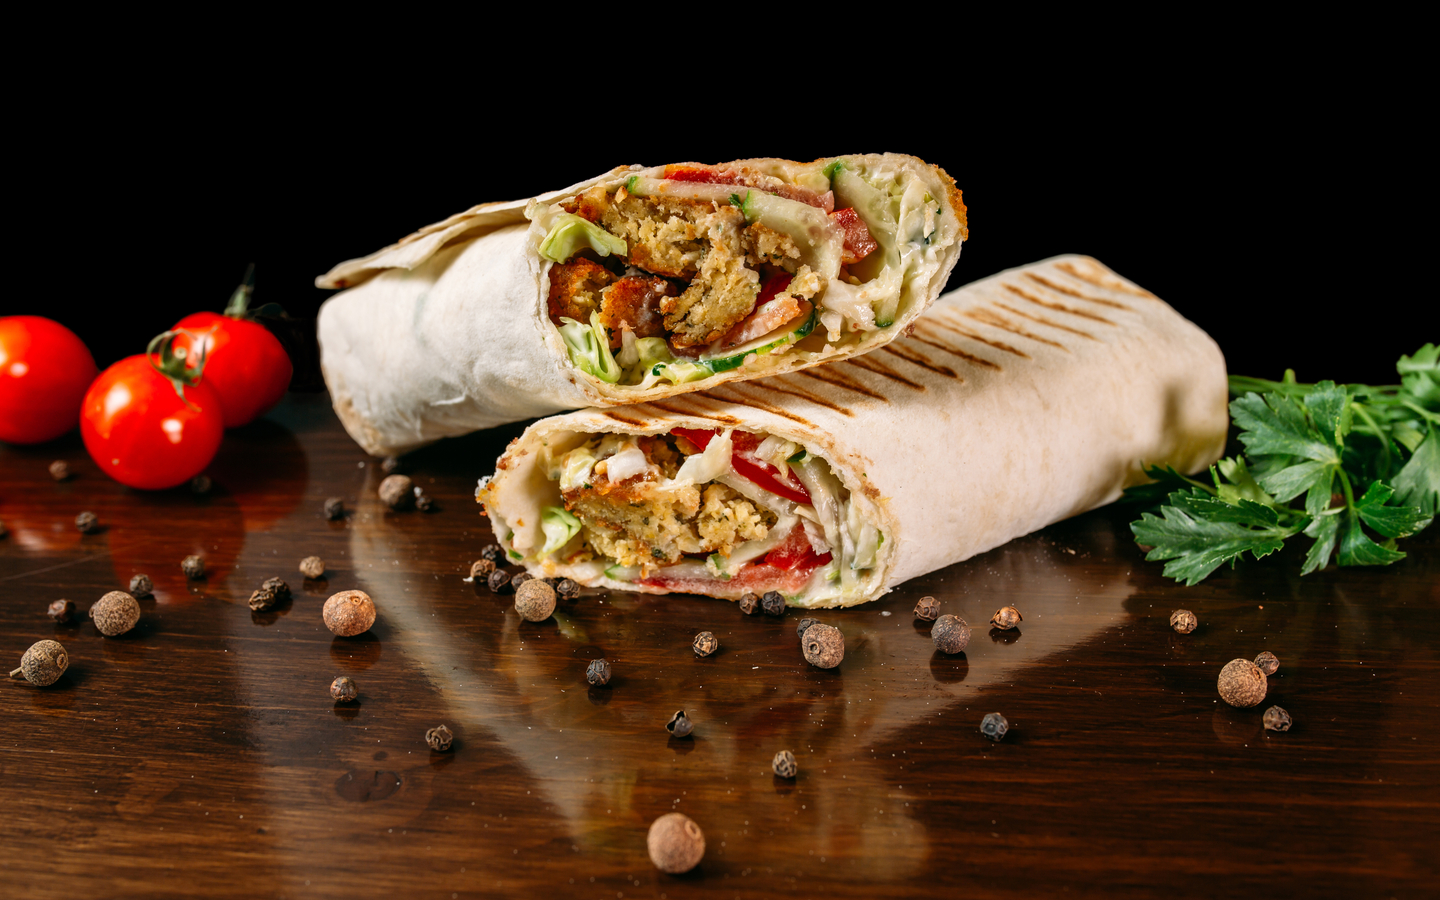 Enjoying shawarma from your favourite food outlet is one of the best things to do at Dubai Marina Mall.